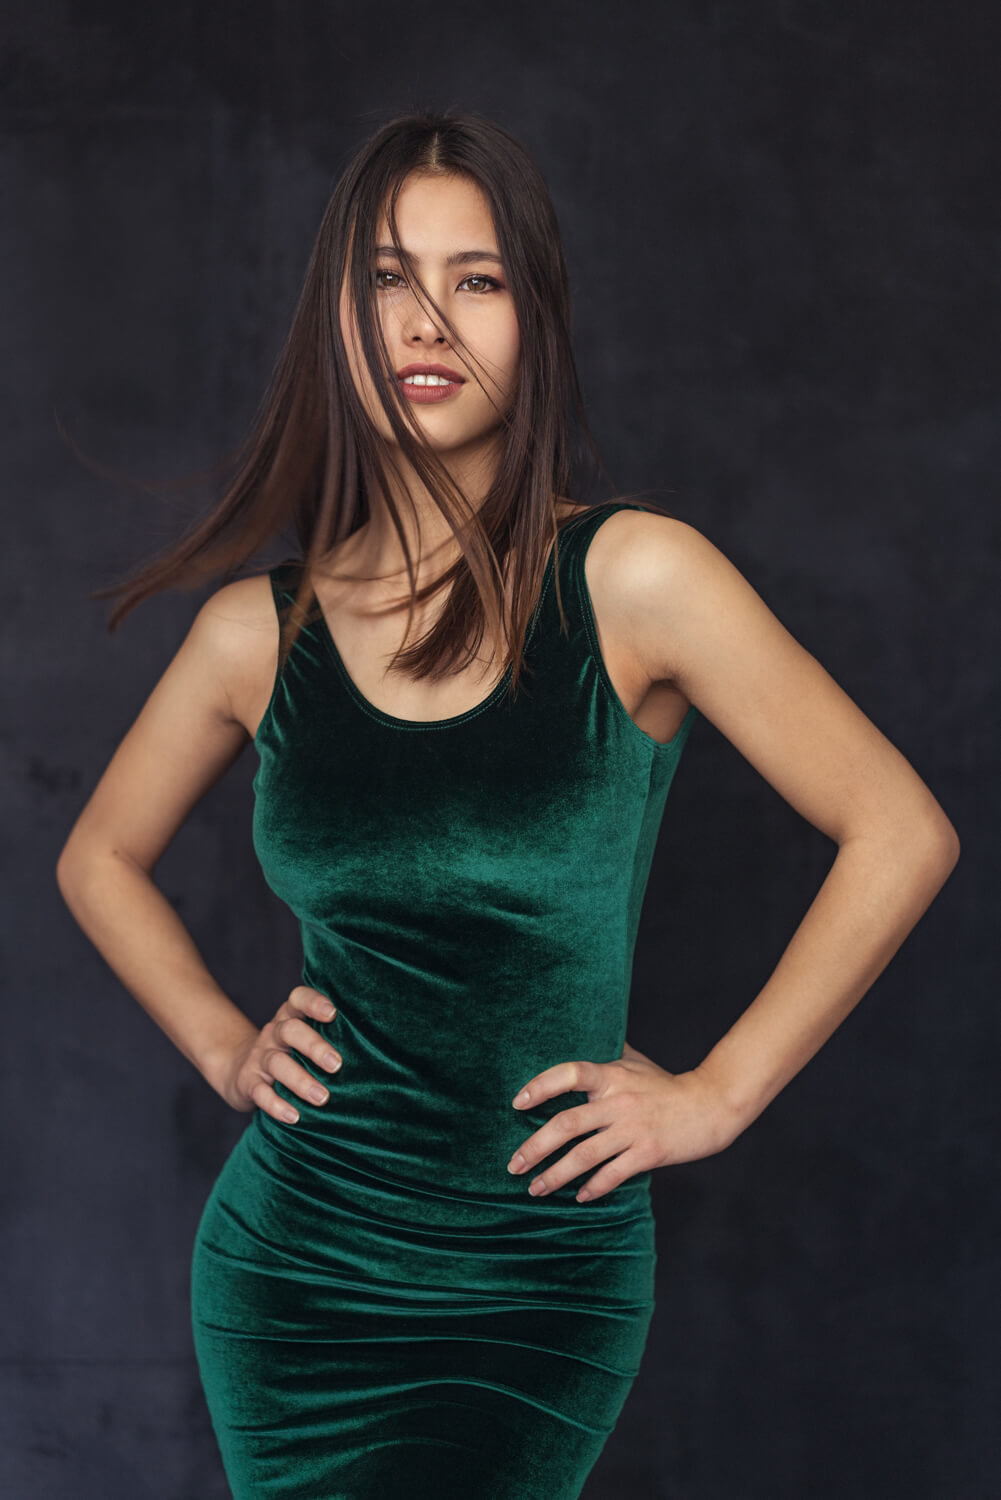 Bethany wearing a striking green dress